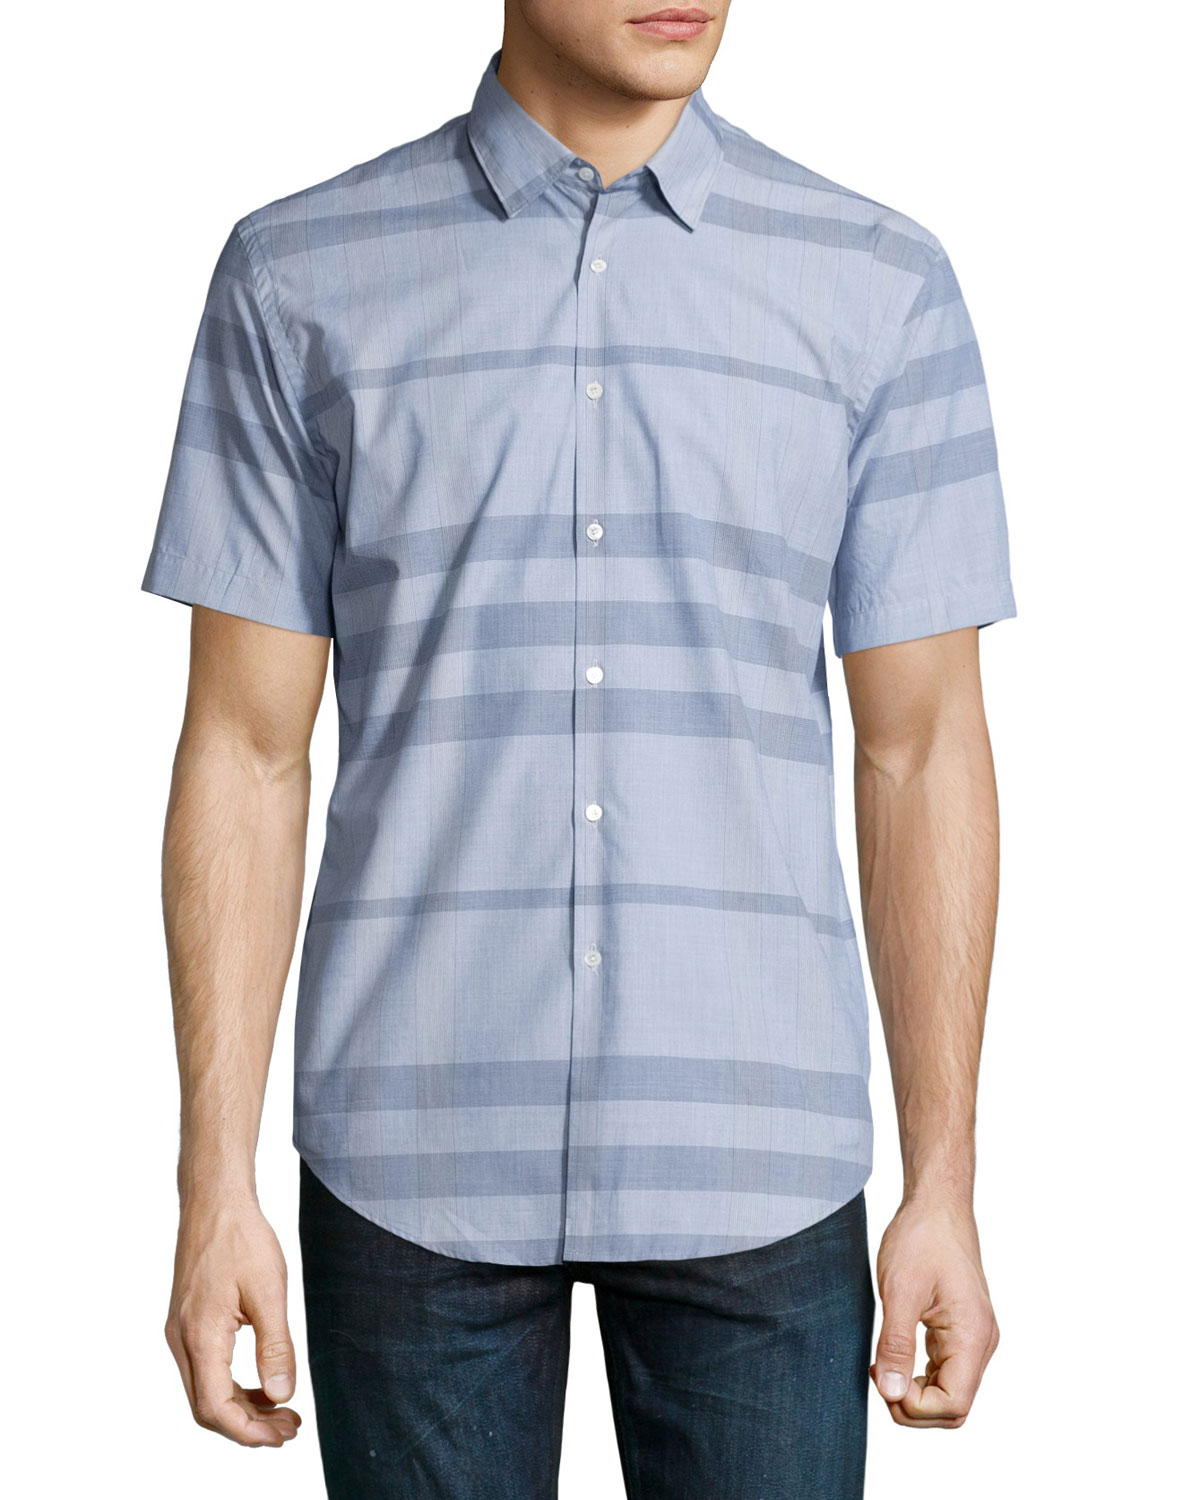 Modern Point Striped Short-Sleeve Sport Shirt, Light Blue